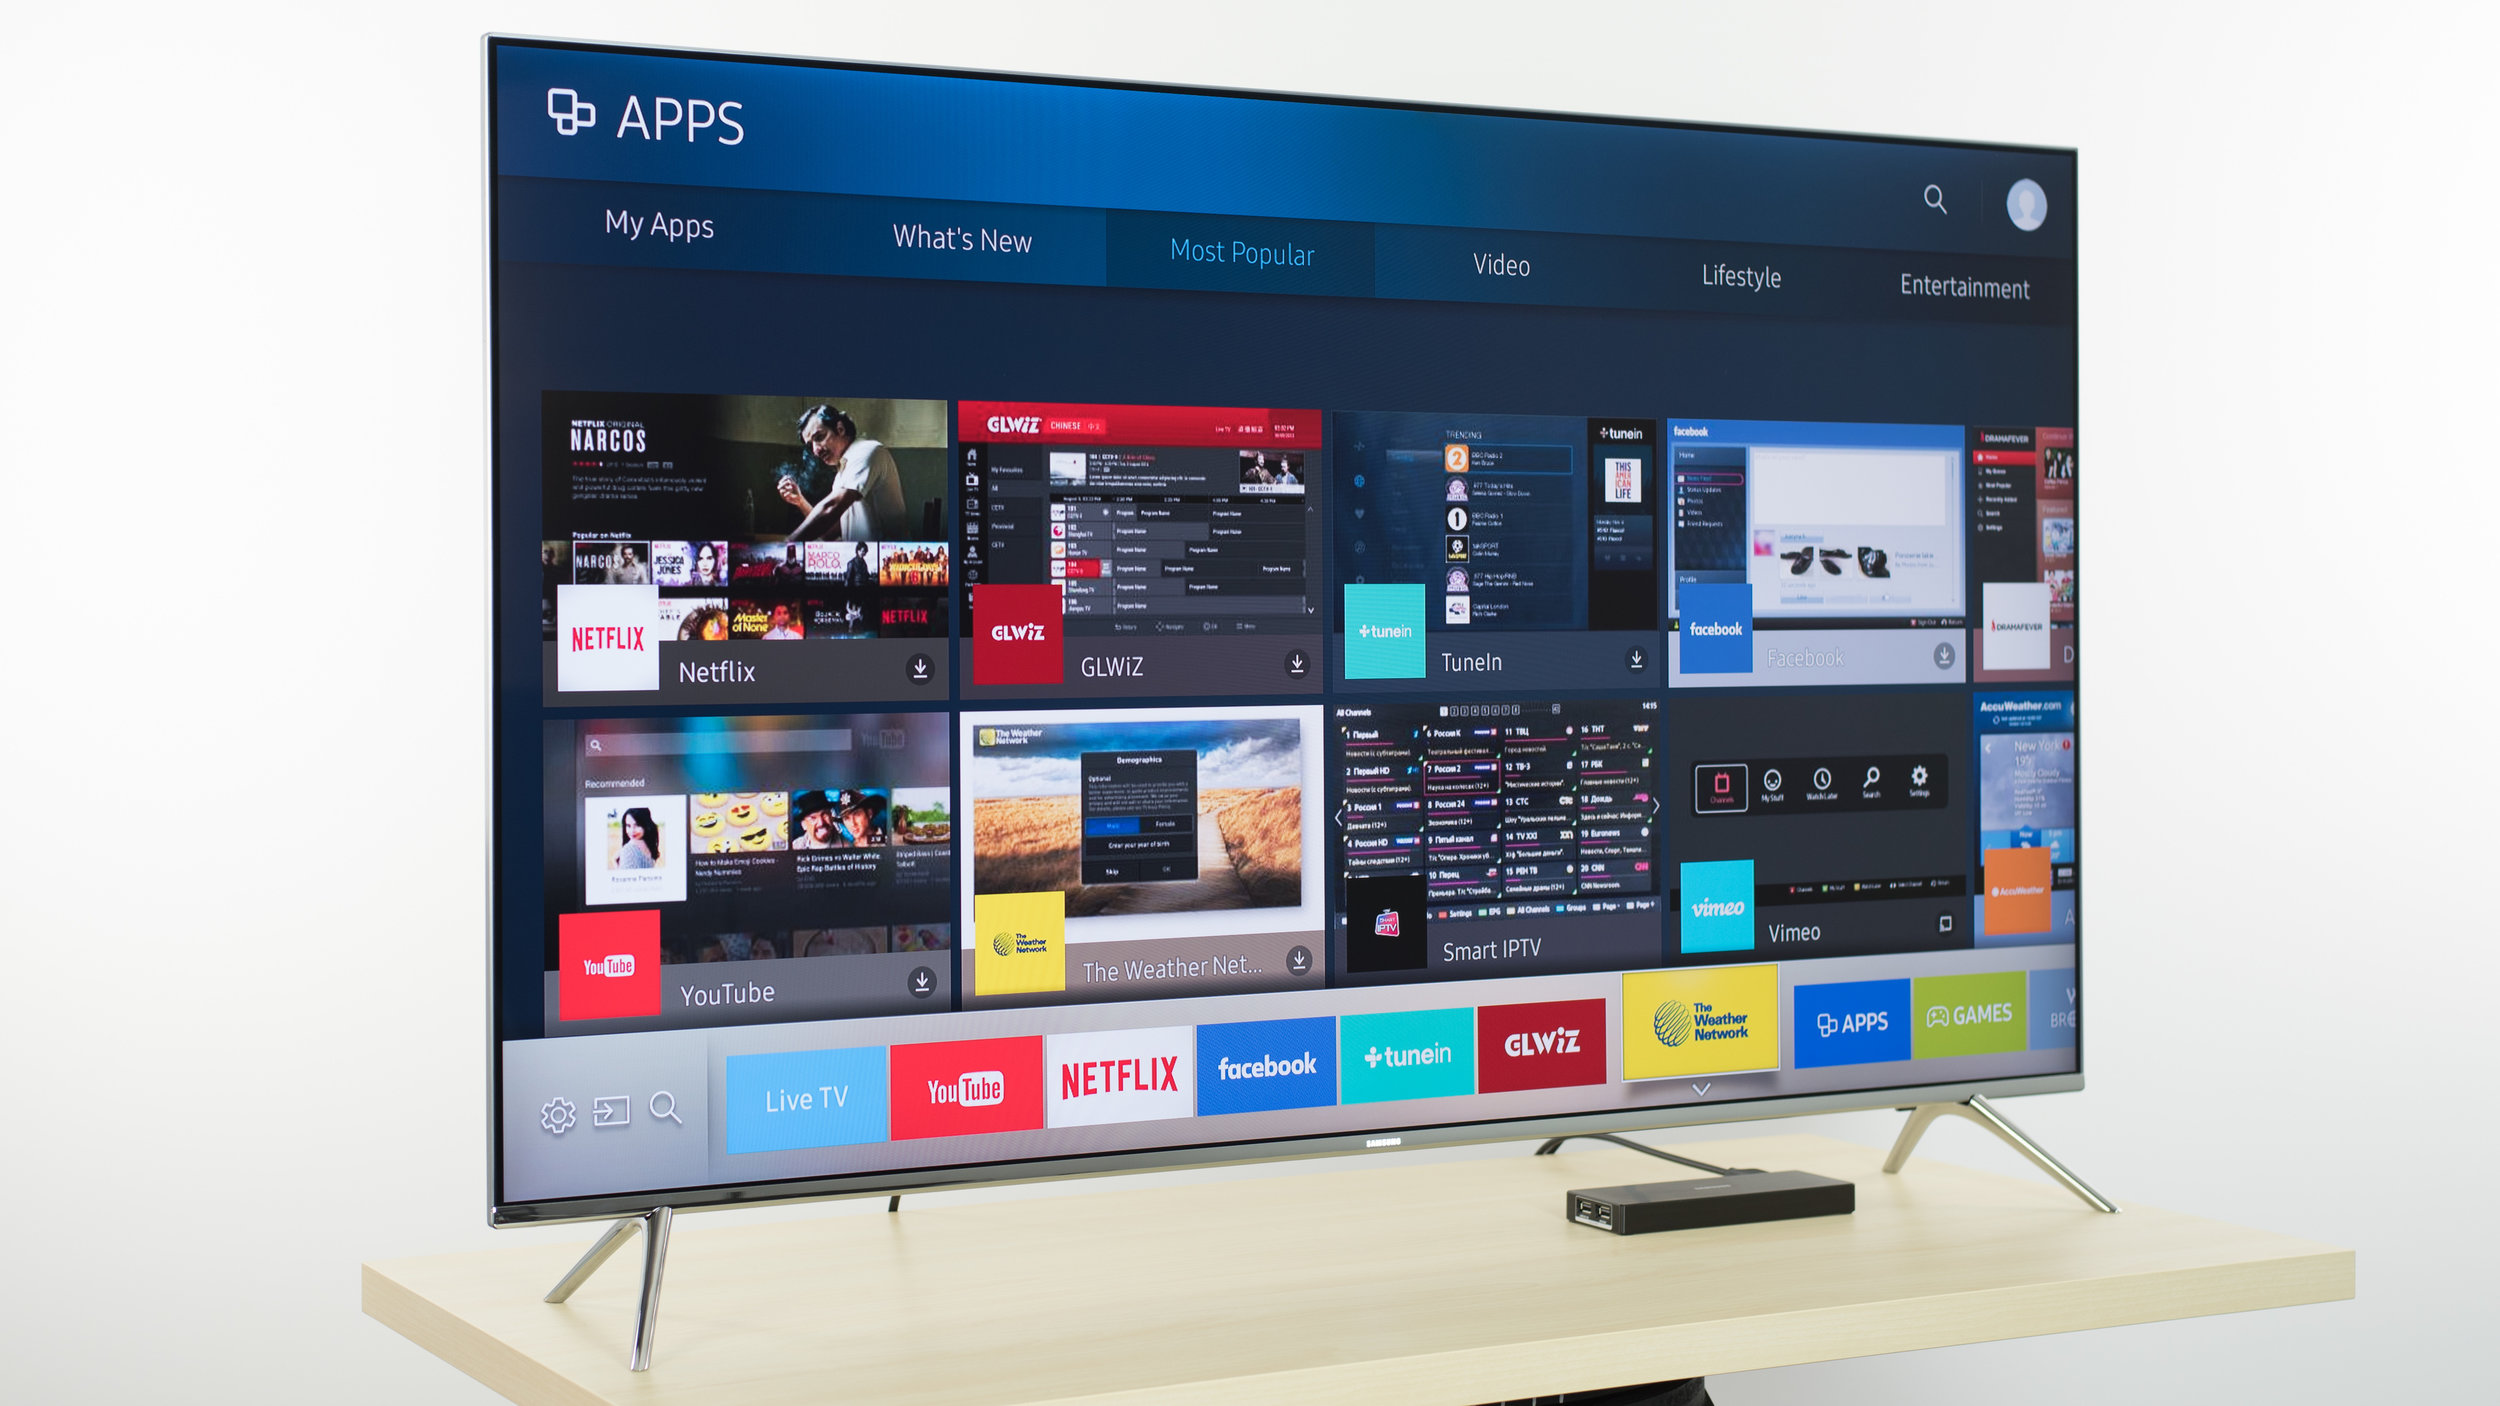 Smart TV sales are on the rise